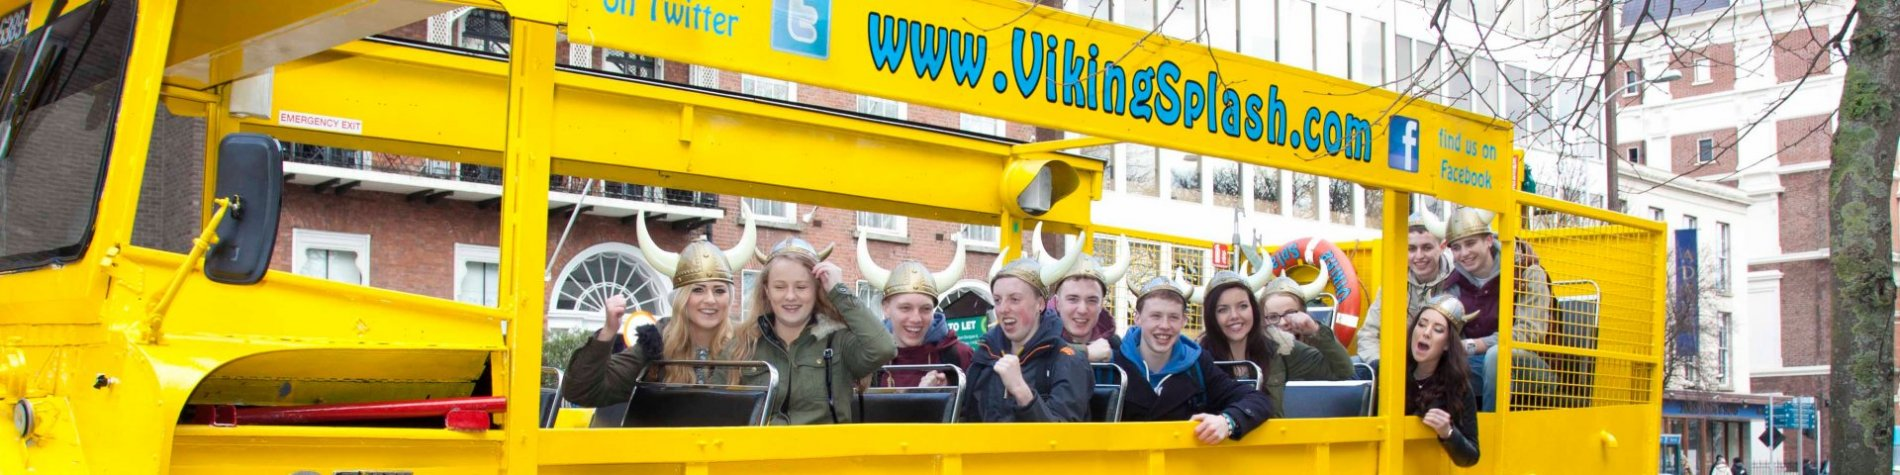 Group of students on a tour in Dublin - riding the Viking Splash amphibious vehicle